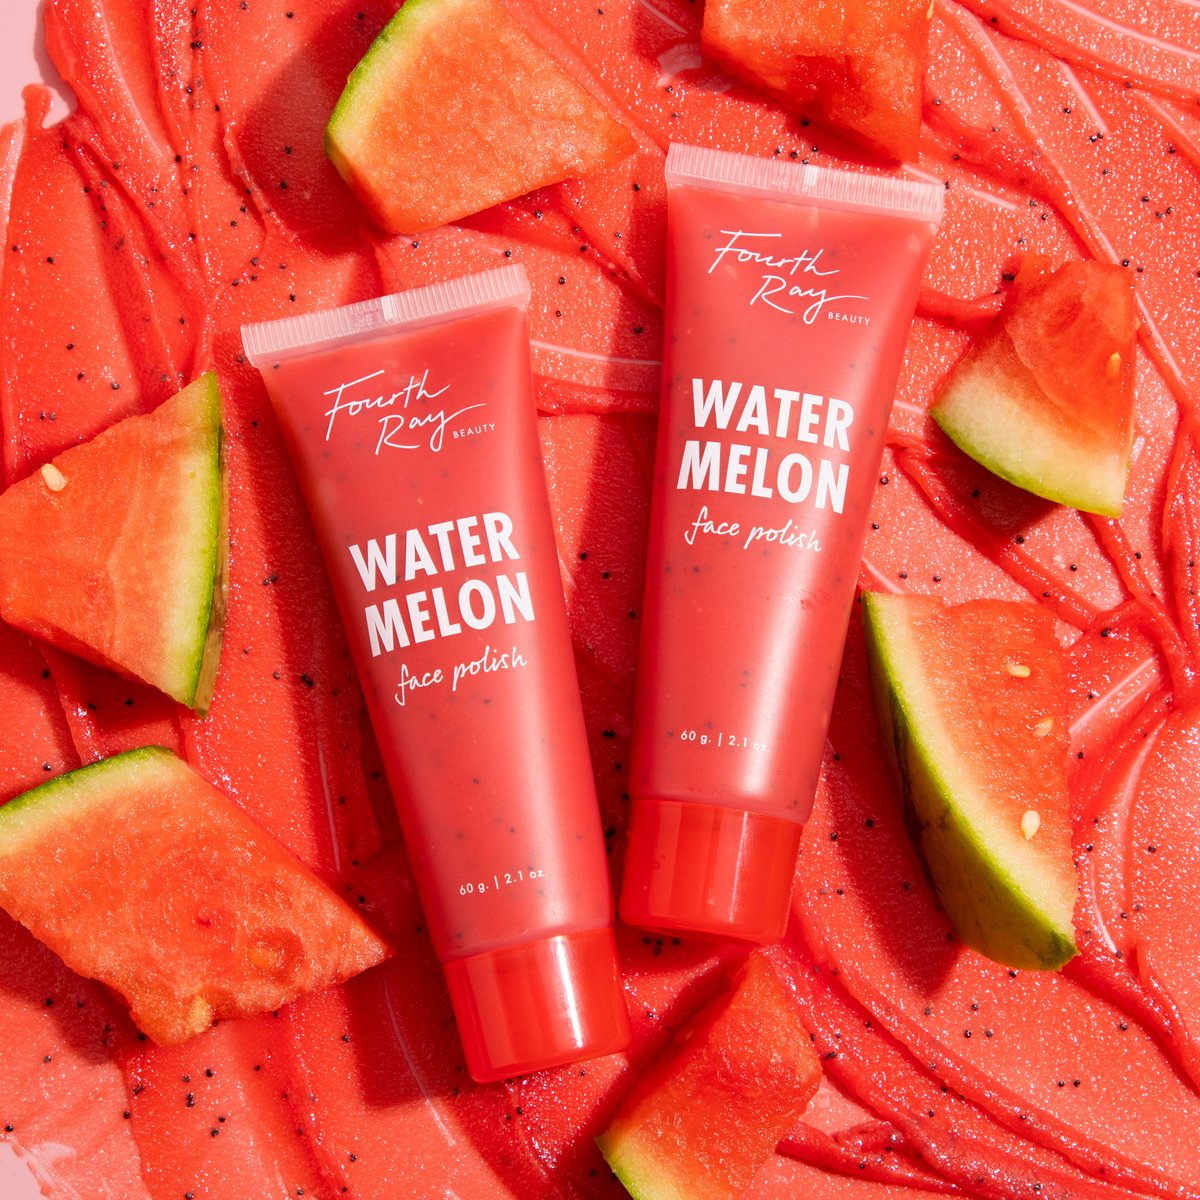 Super fresh faced🍉💦 Meet Watermelon Face Polish, made with super fine sugar & poppy seeds to gently exfoliate while antioxidant-rich watermelon seed oil balances, and restores dull complexions🍉 💦Skin feels: 🍉Fresh 🍉Healthy 🍉& Smooth Launching Wednesday 6/23 at 10 am pst! https://t.co/LlwpSX9D75